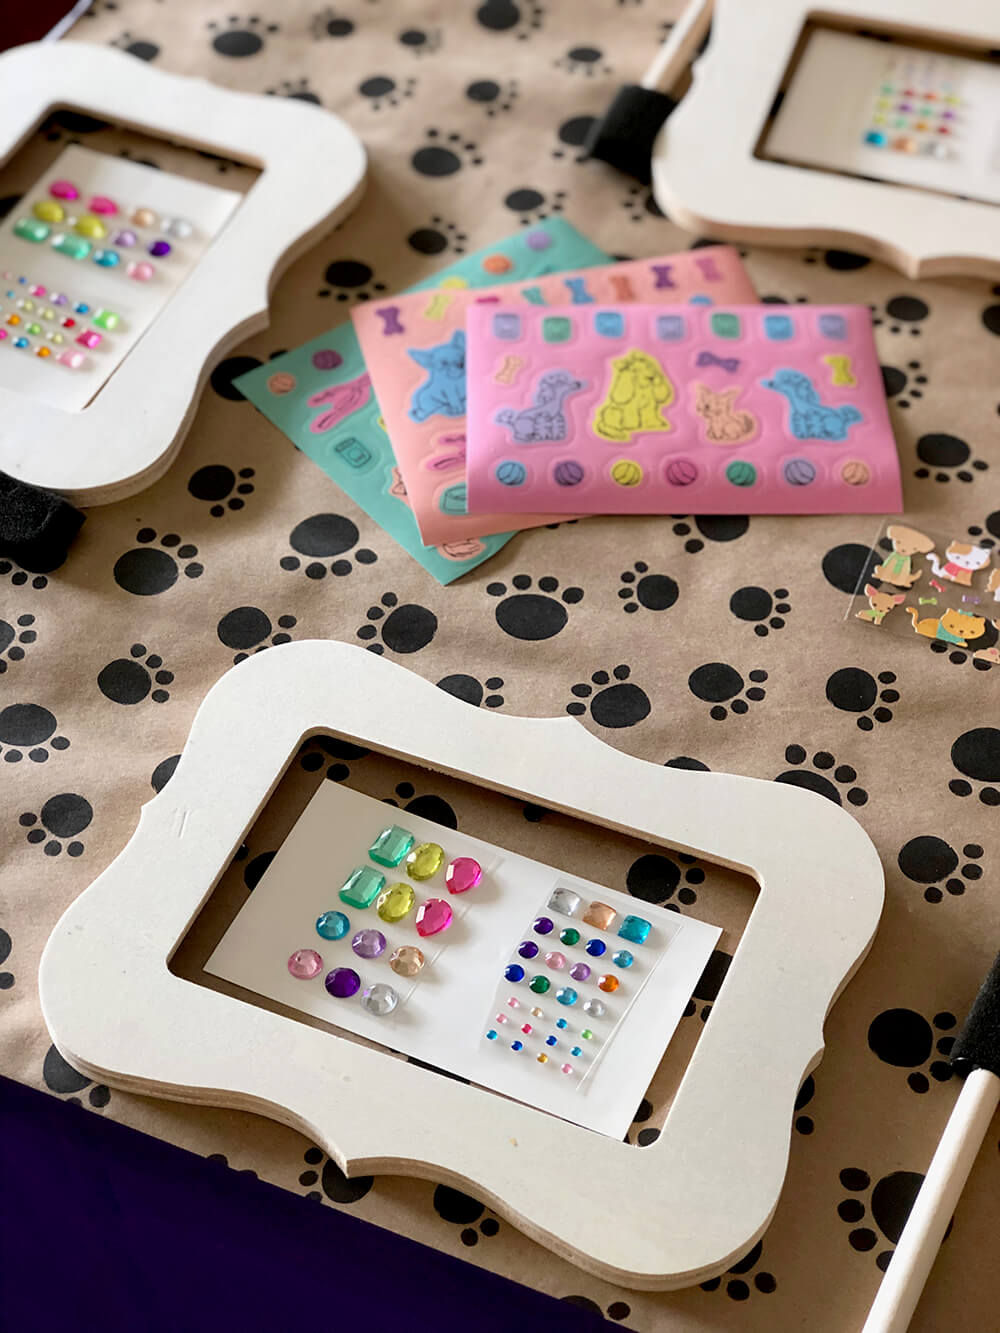 Painting station - Puppy party activity ideas for kids